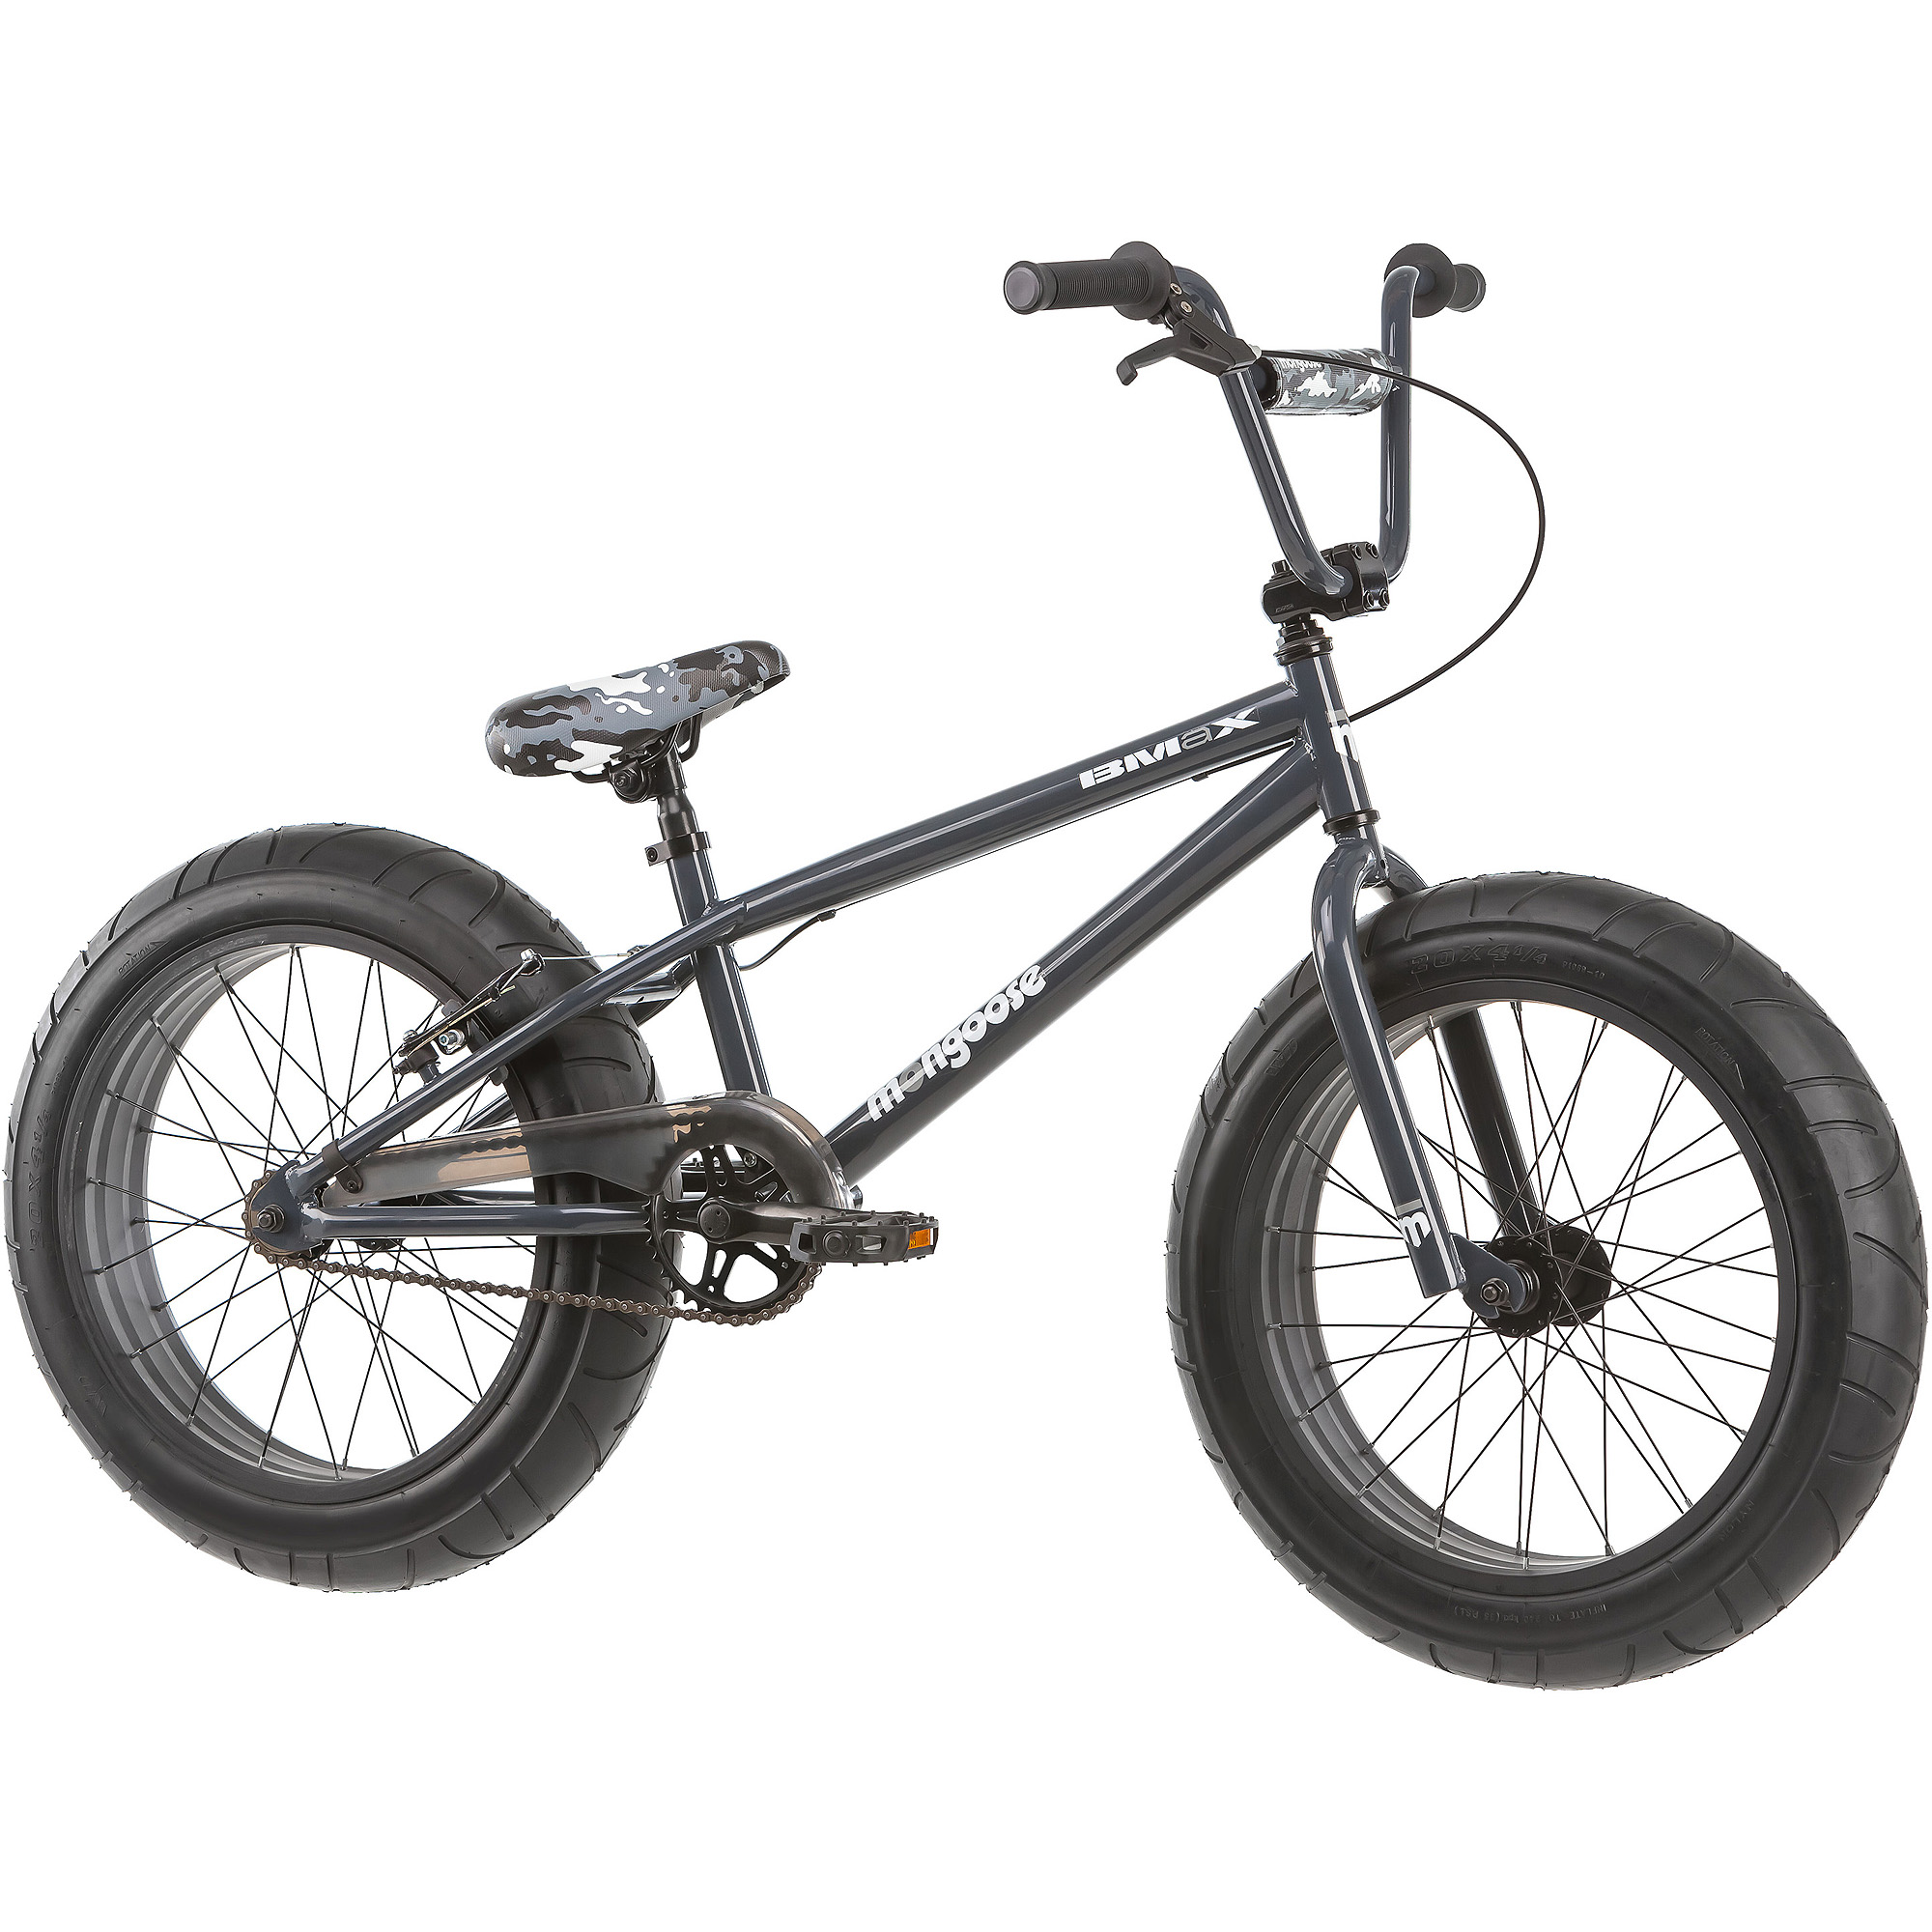 "20"" Mongoose BMaX All-Terrain Fat Tire Mountain Bike, Black/Gray"